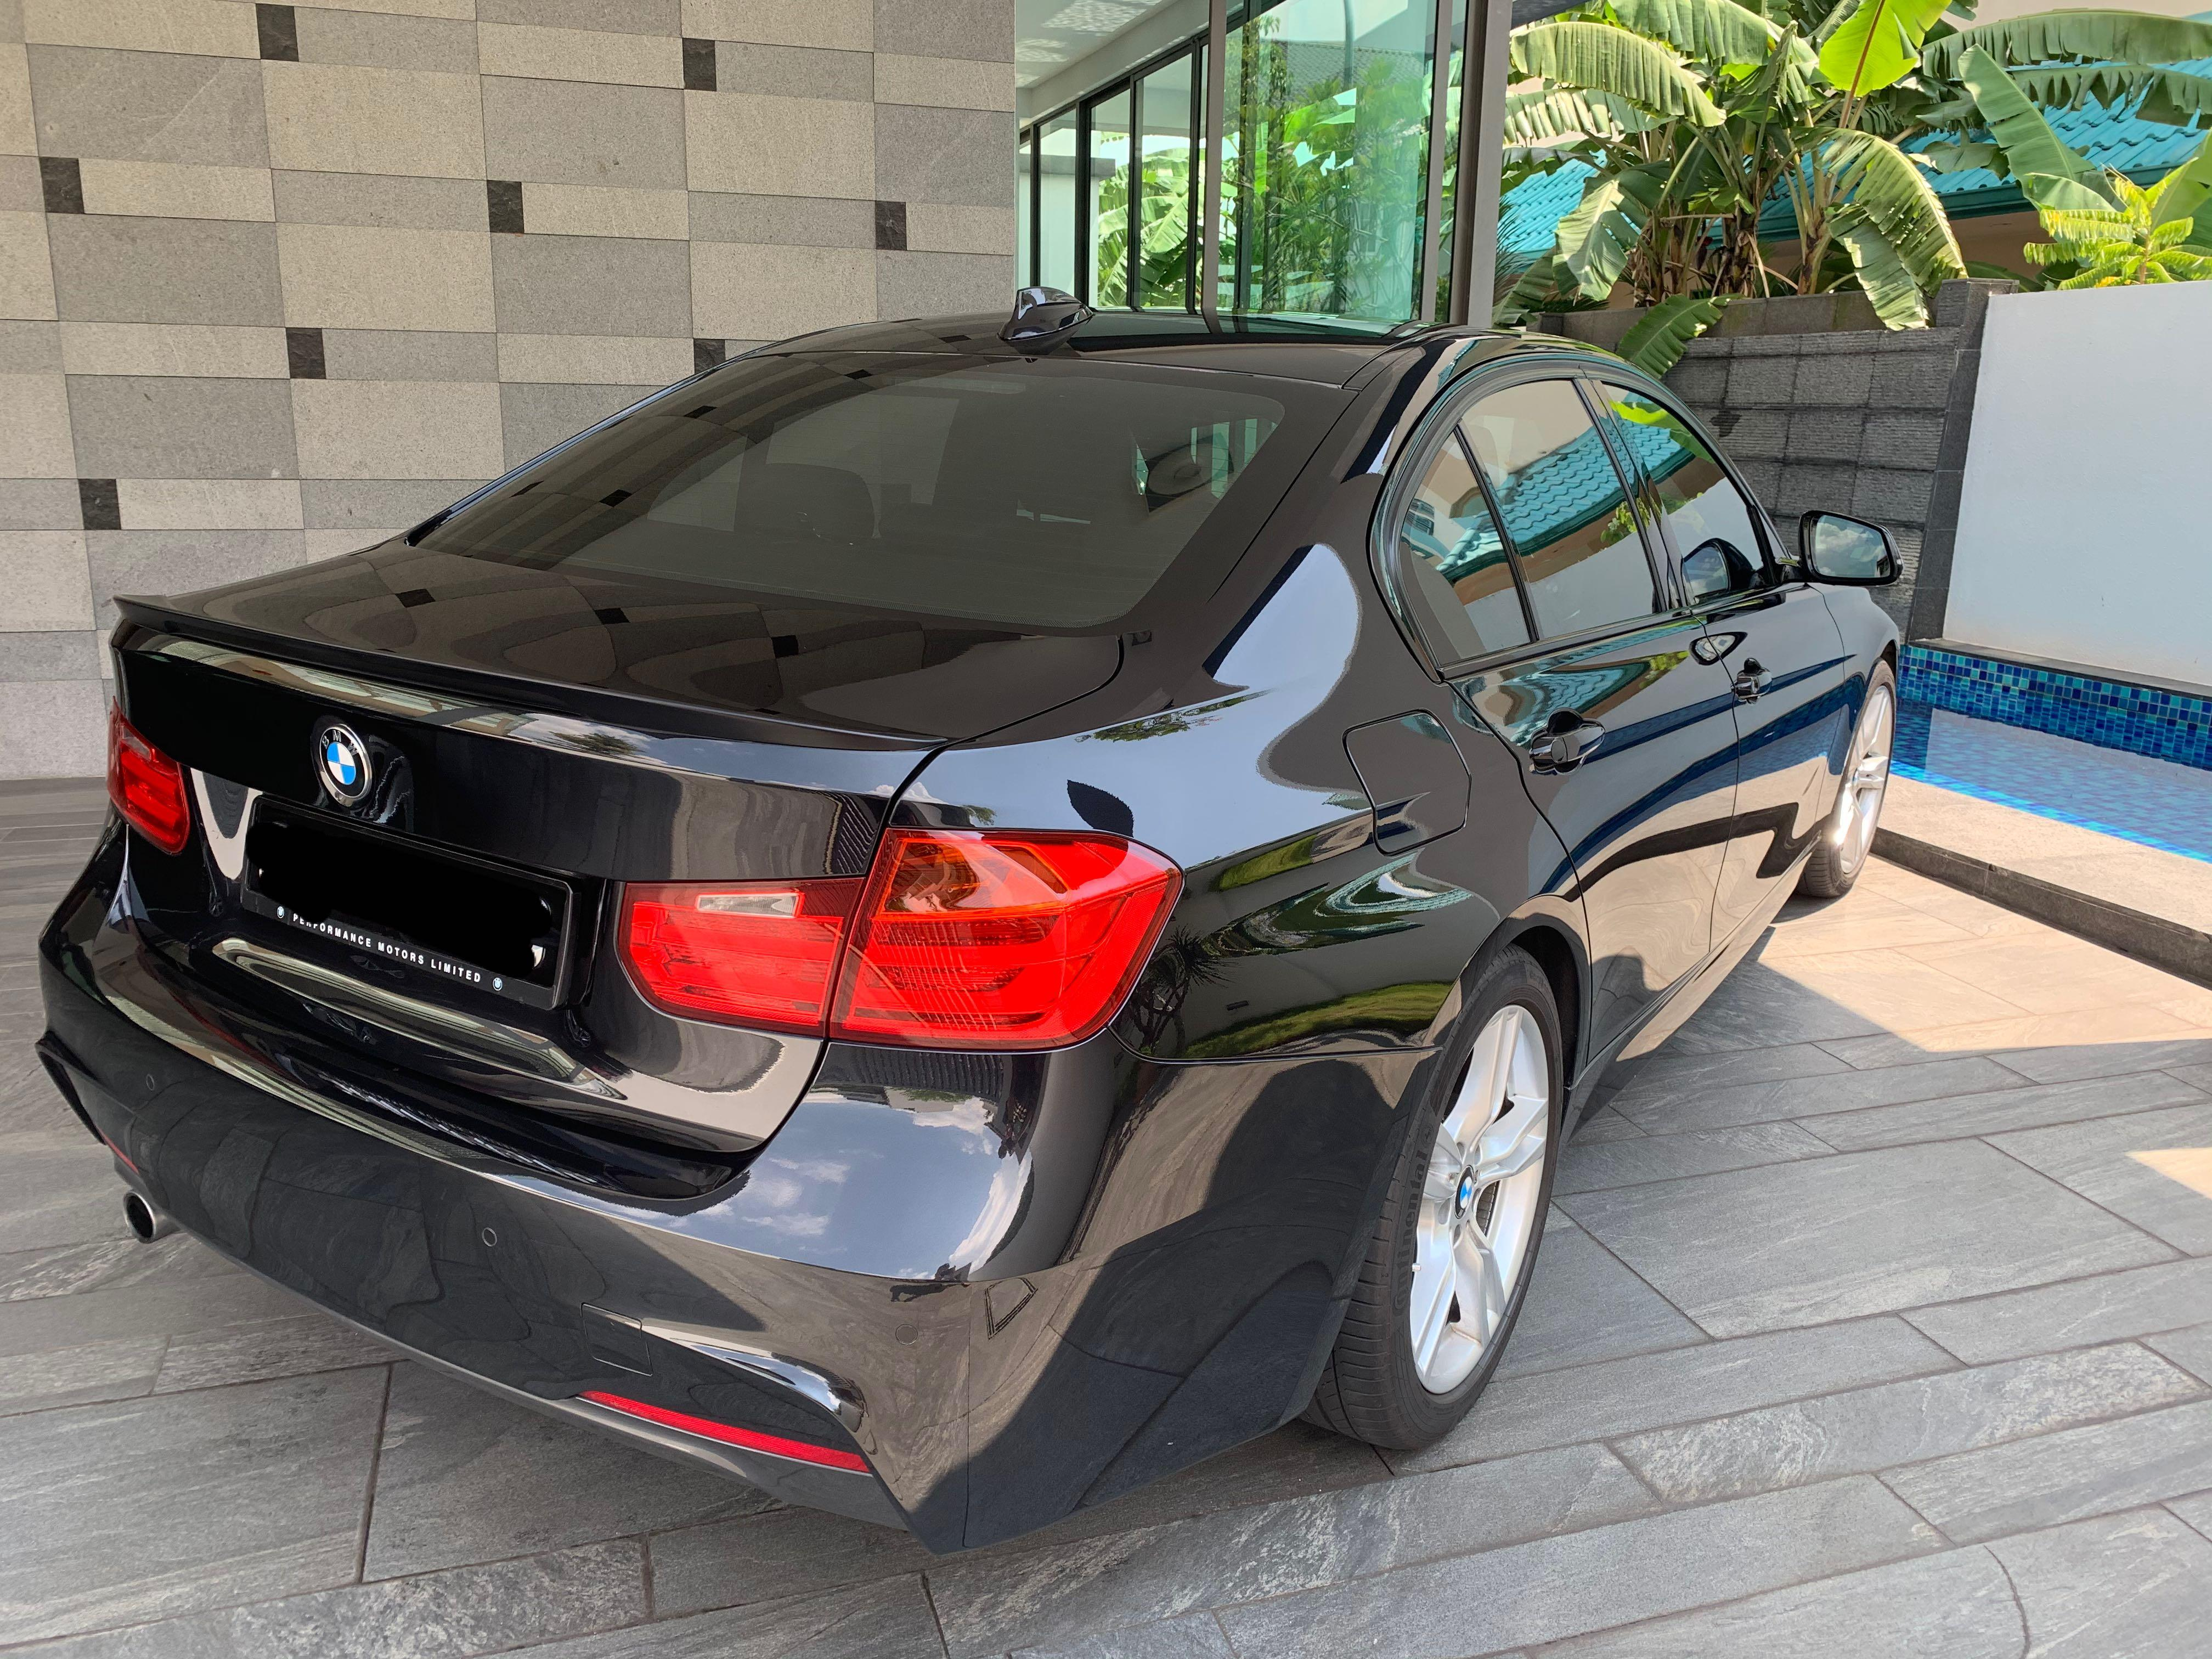 Personal car for hire! Bmw f30 director 6th car for quick rental lease leasing cheap promotion. M sport model. Low fuel consumption